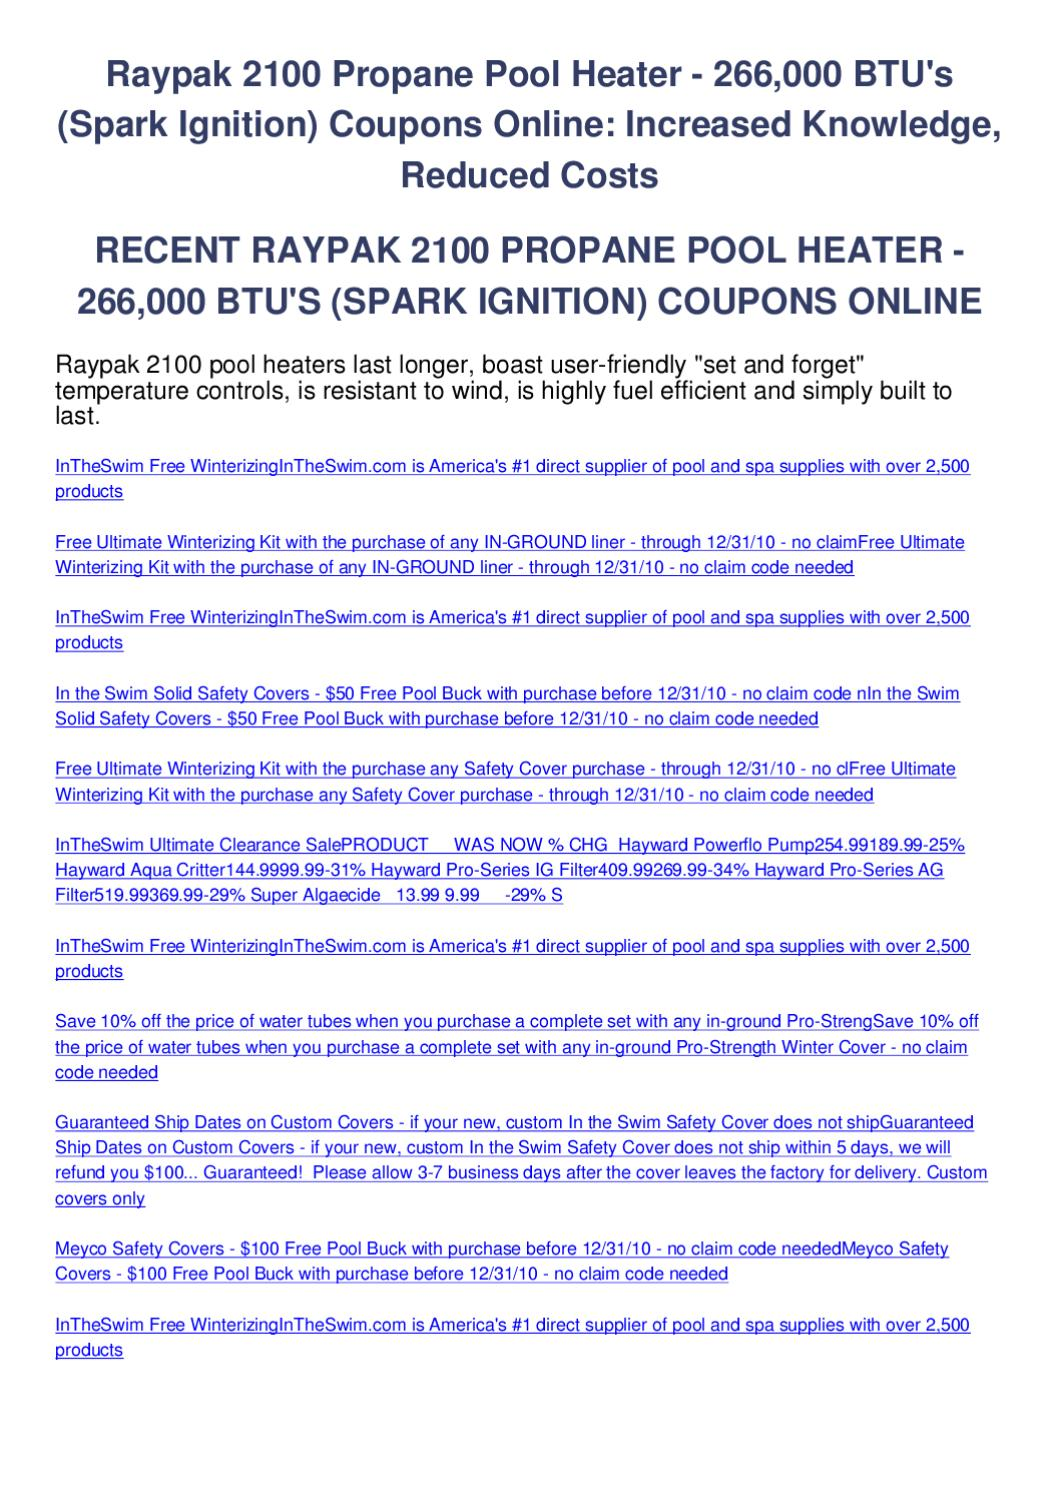 Raypak 2100 Propane Pool Heater 266000 Btus Spark Ignition Coupons